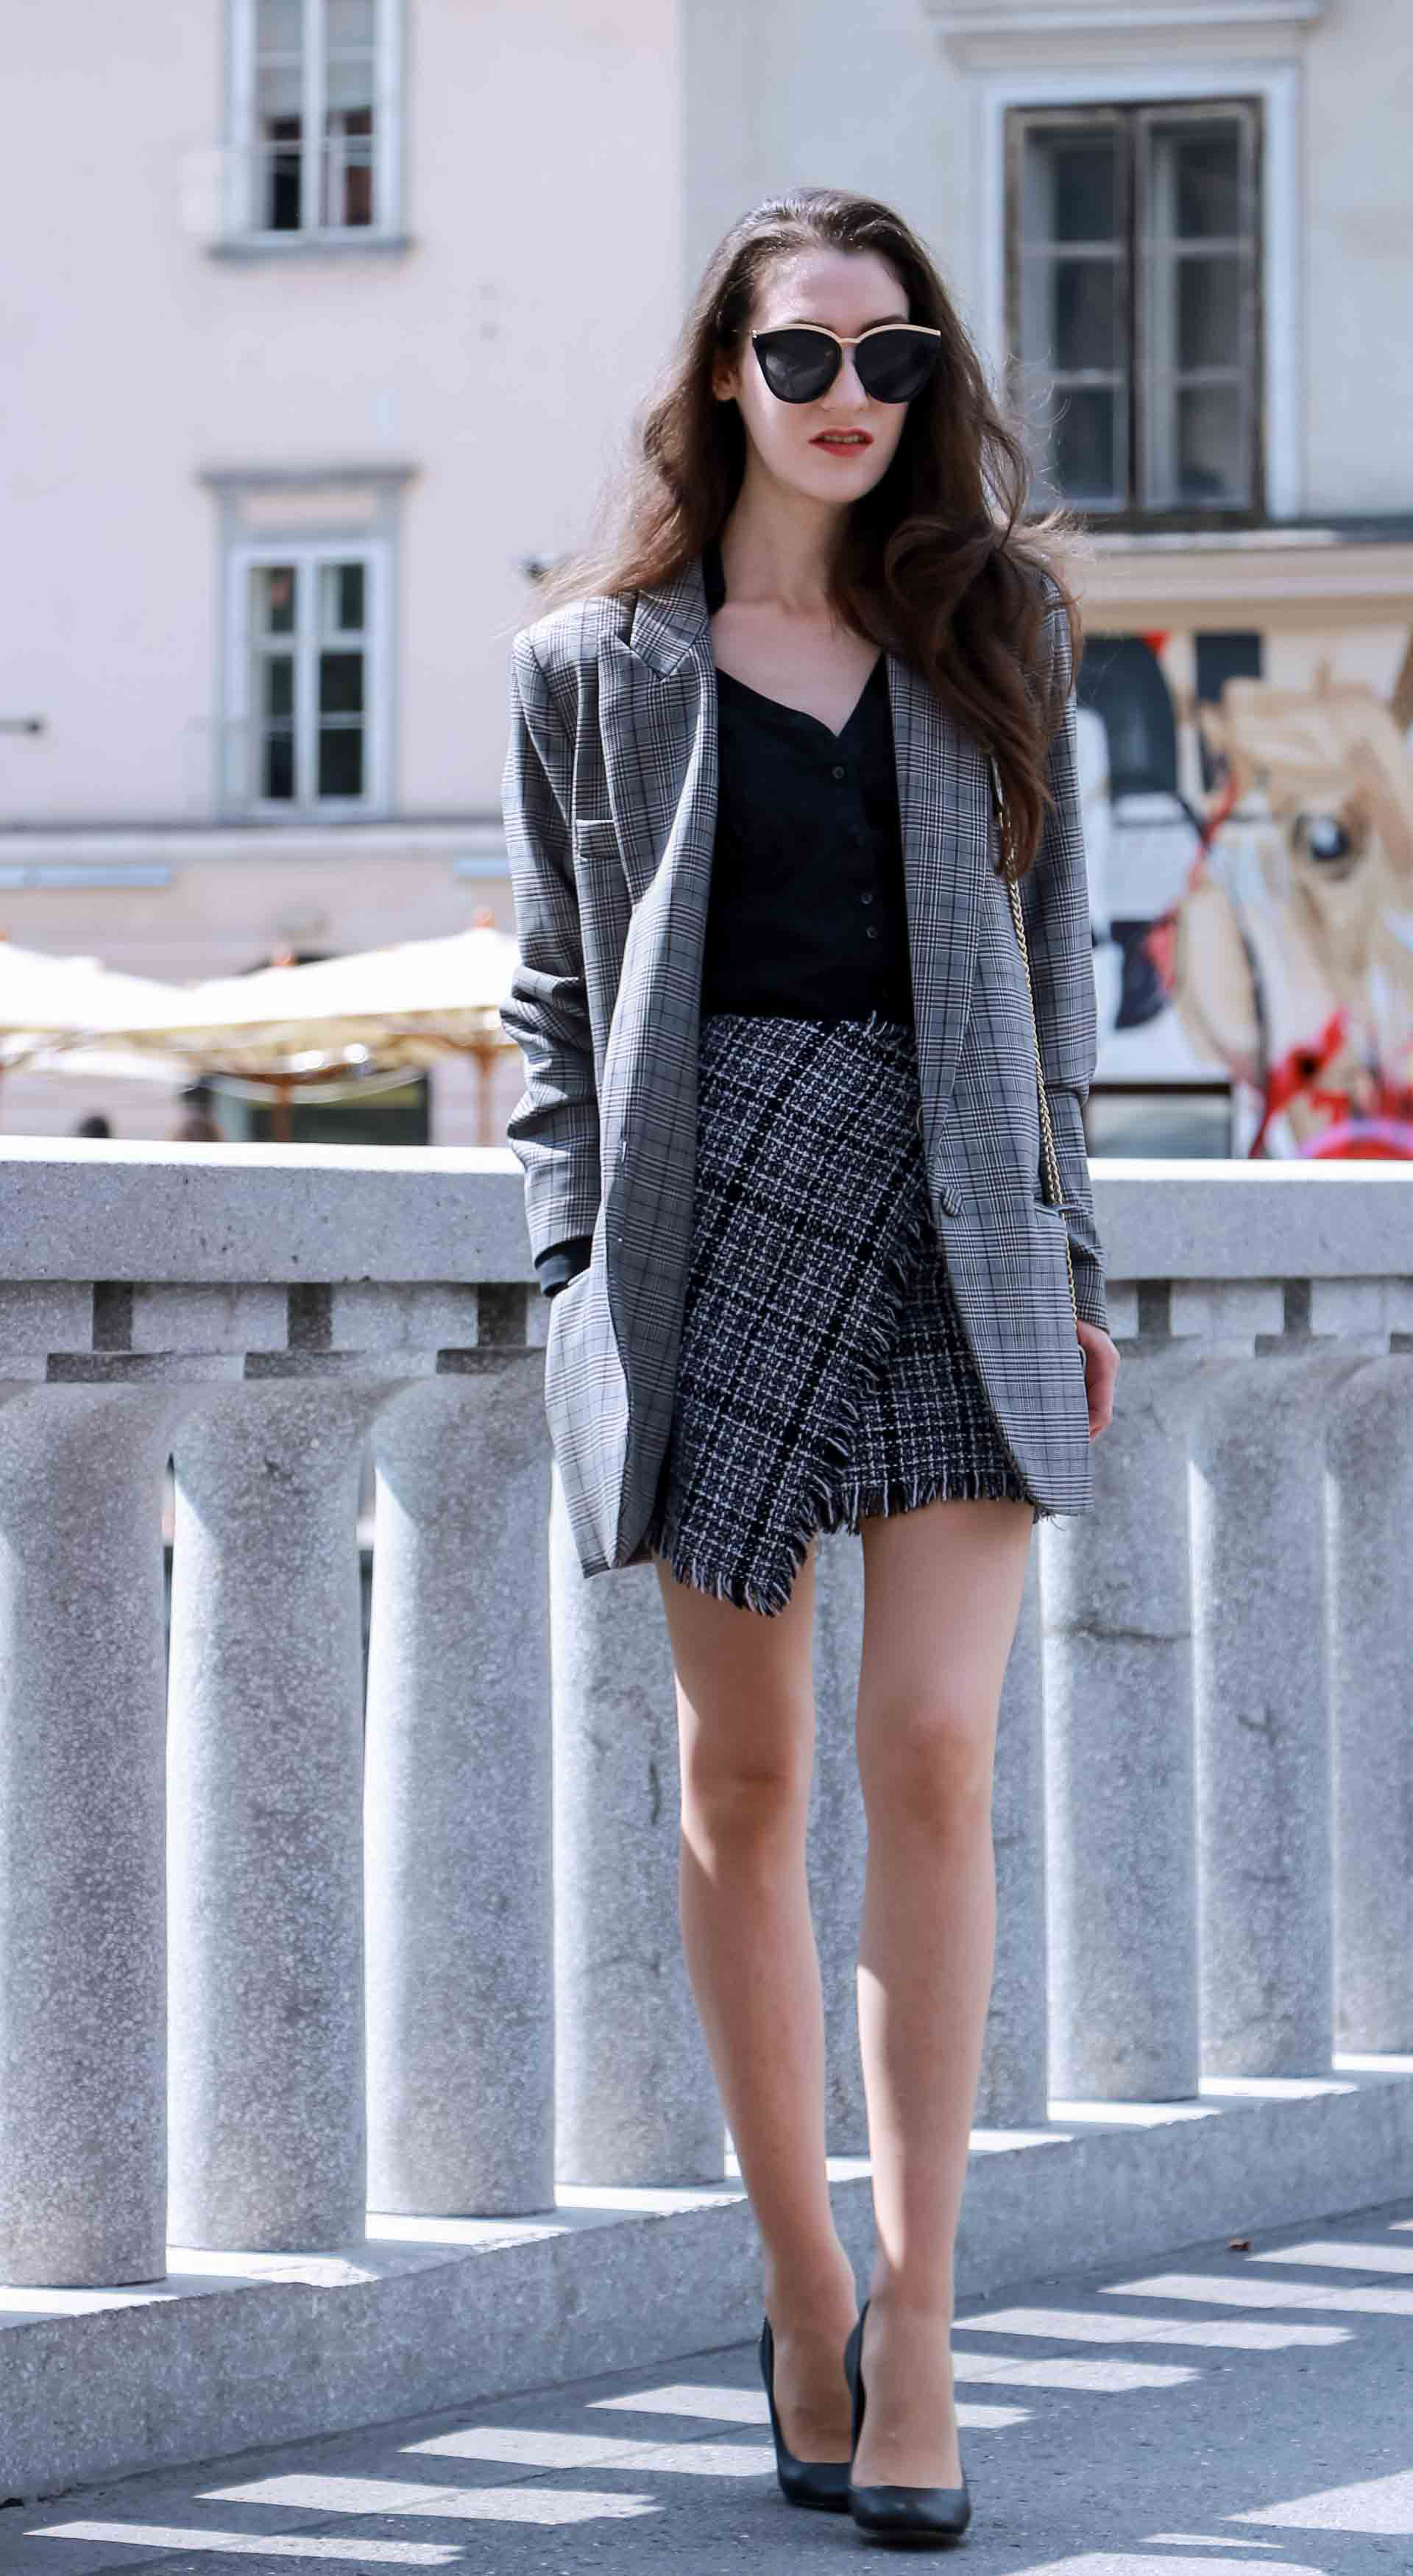 Fashion Blogger Veronika Lipar of Brunette from Wall Street dressed in Erika Cavallini oversized boyfriend plaid blazer with short tweed black and white mini skirt from streets, Le specs sunglasses, black pumps and white chain strap shoulder bag while walking down the street in Ljubljana